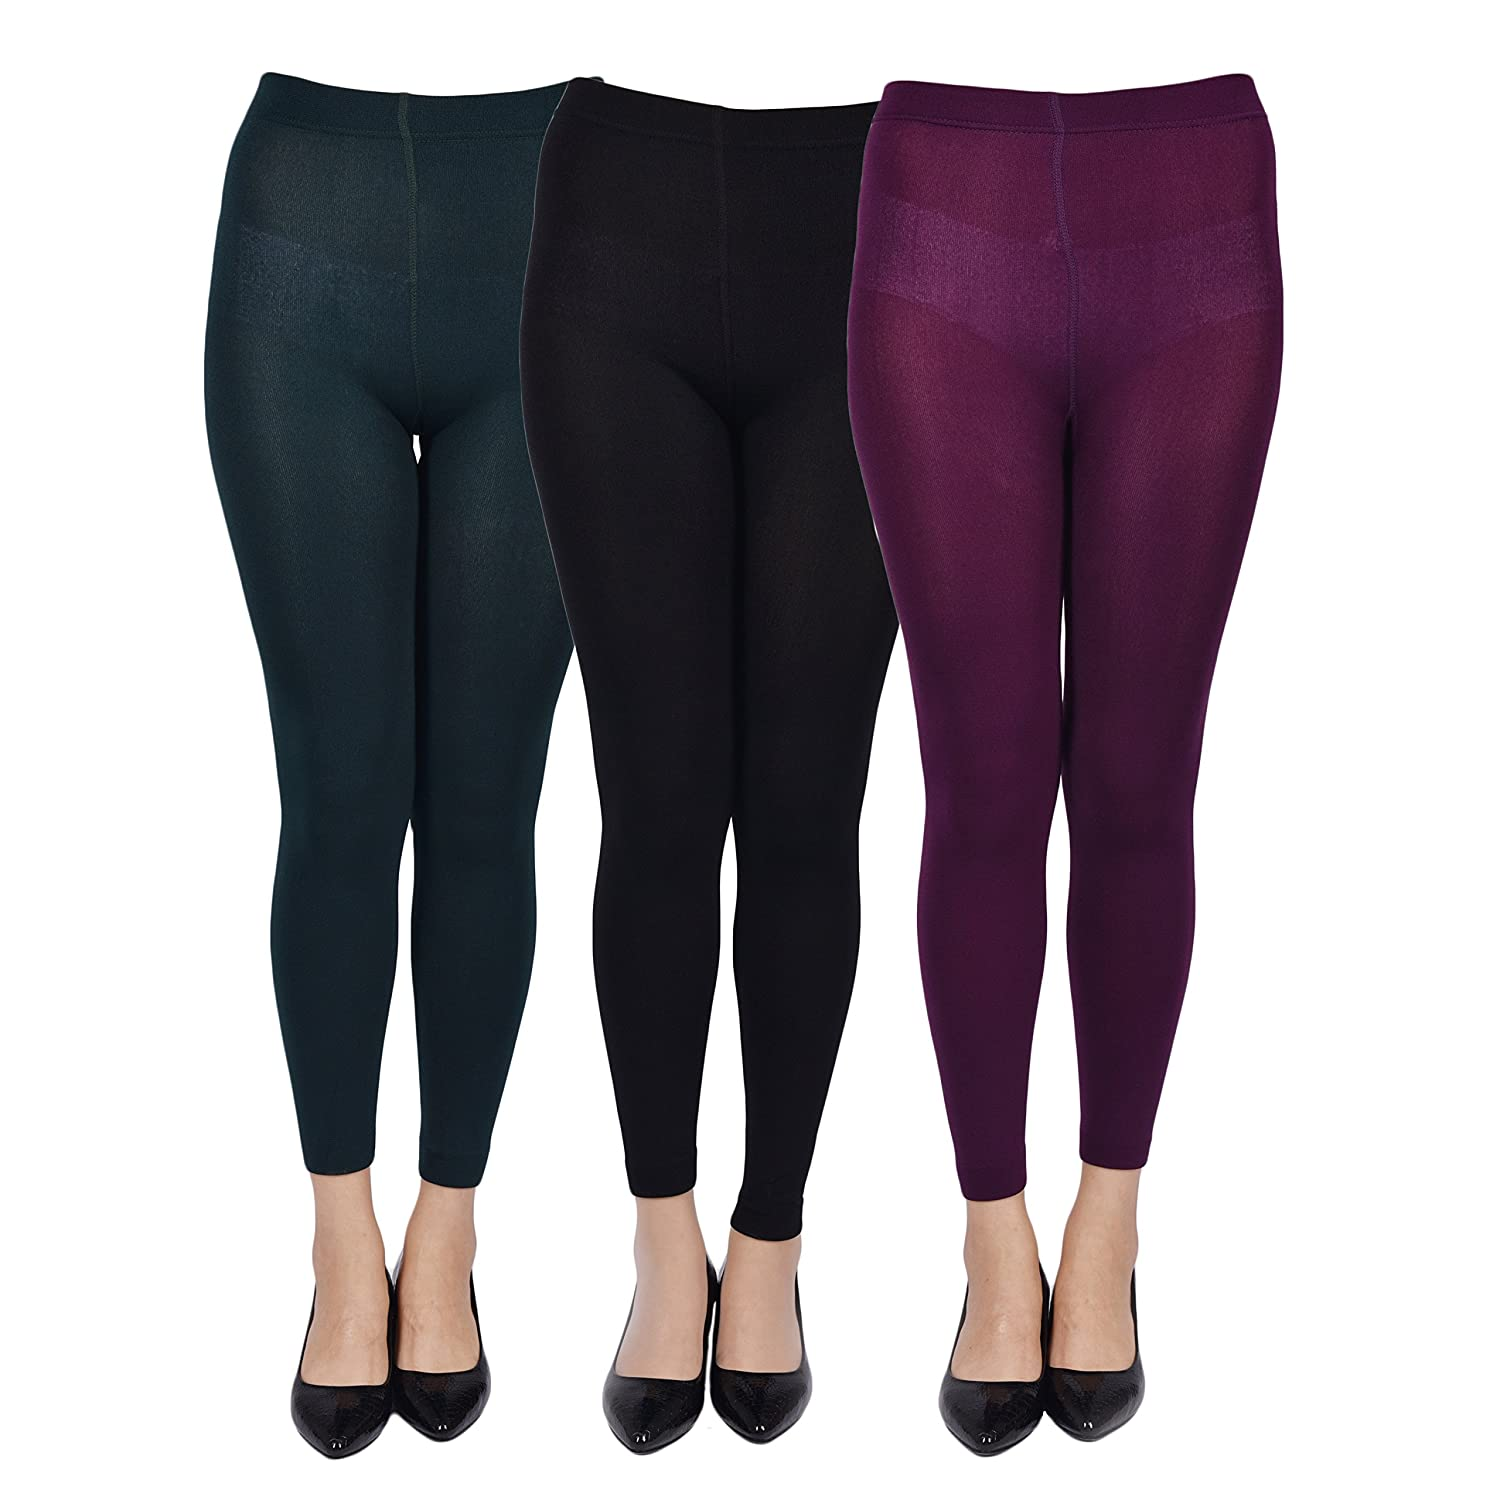 3 Pack Leggings for Women Ankle Length Seamless Fleece Lined Stretch Leggings WH161108009CWG4